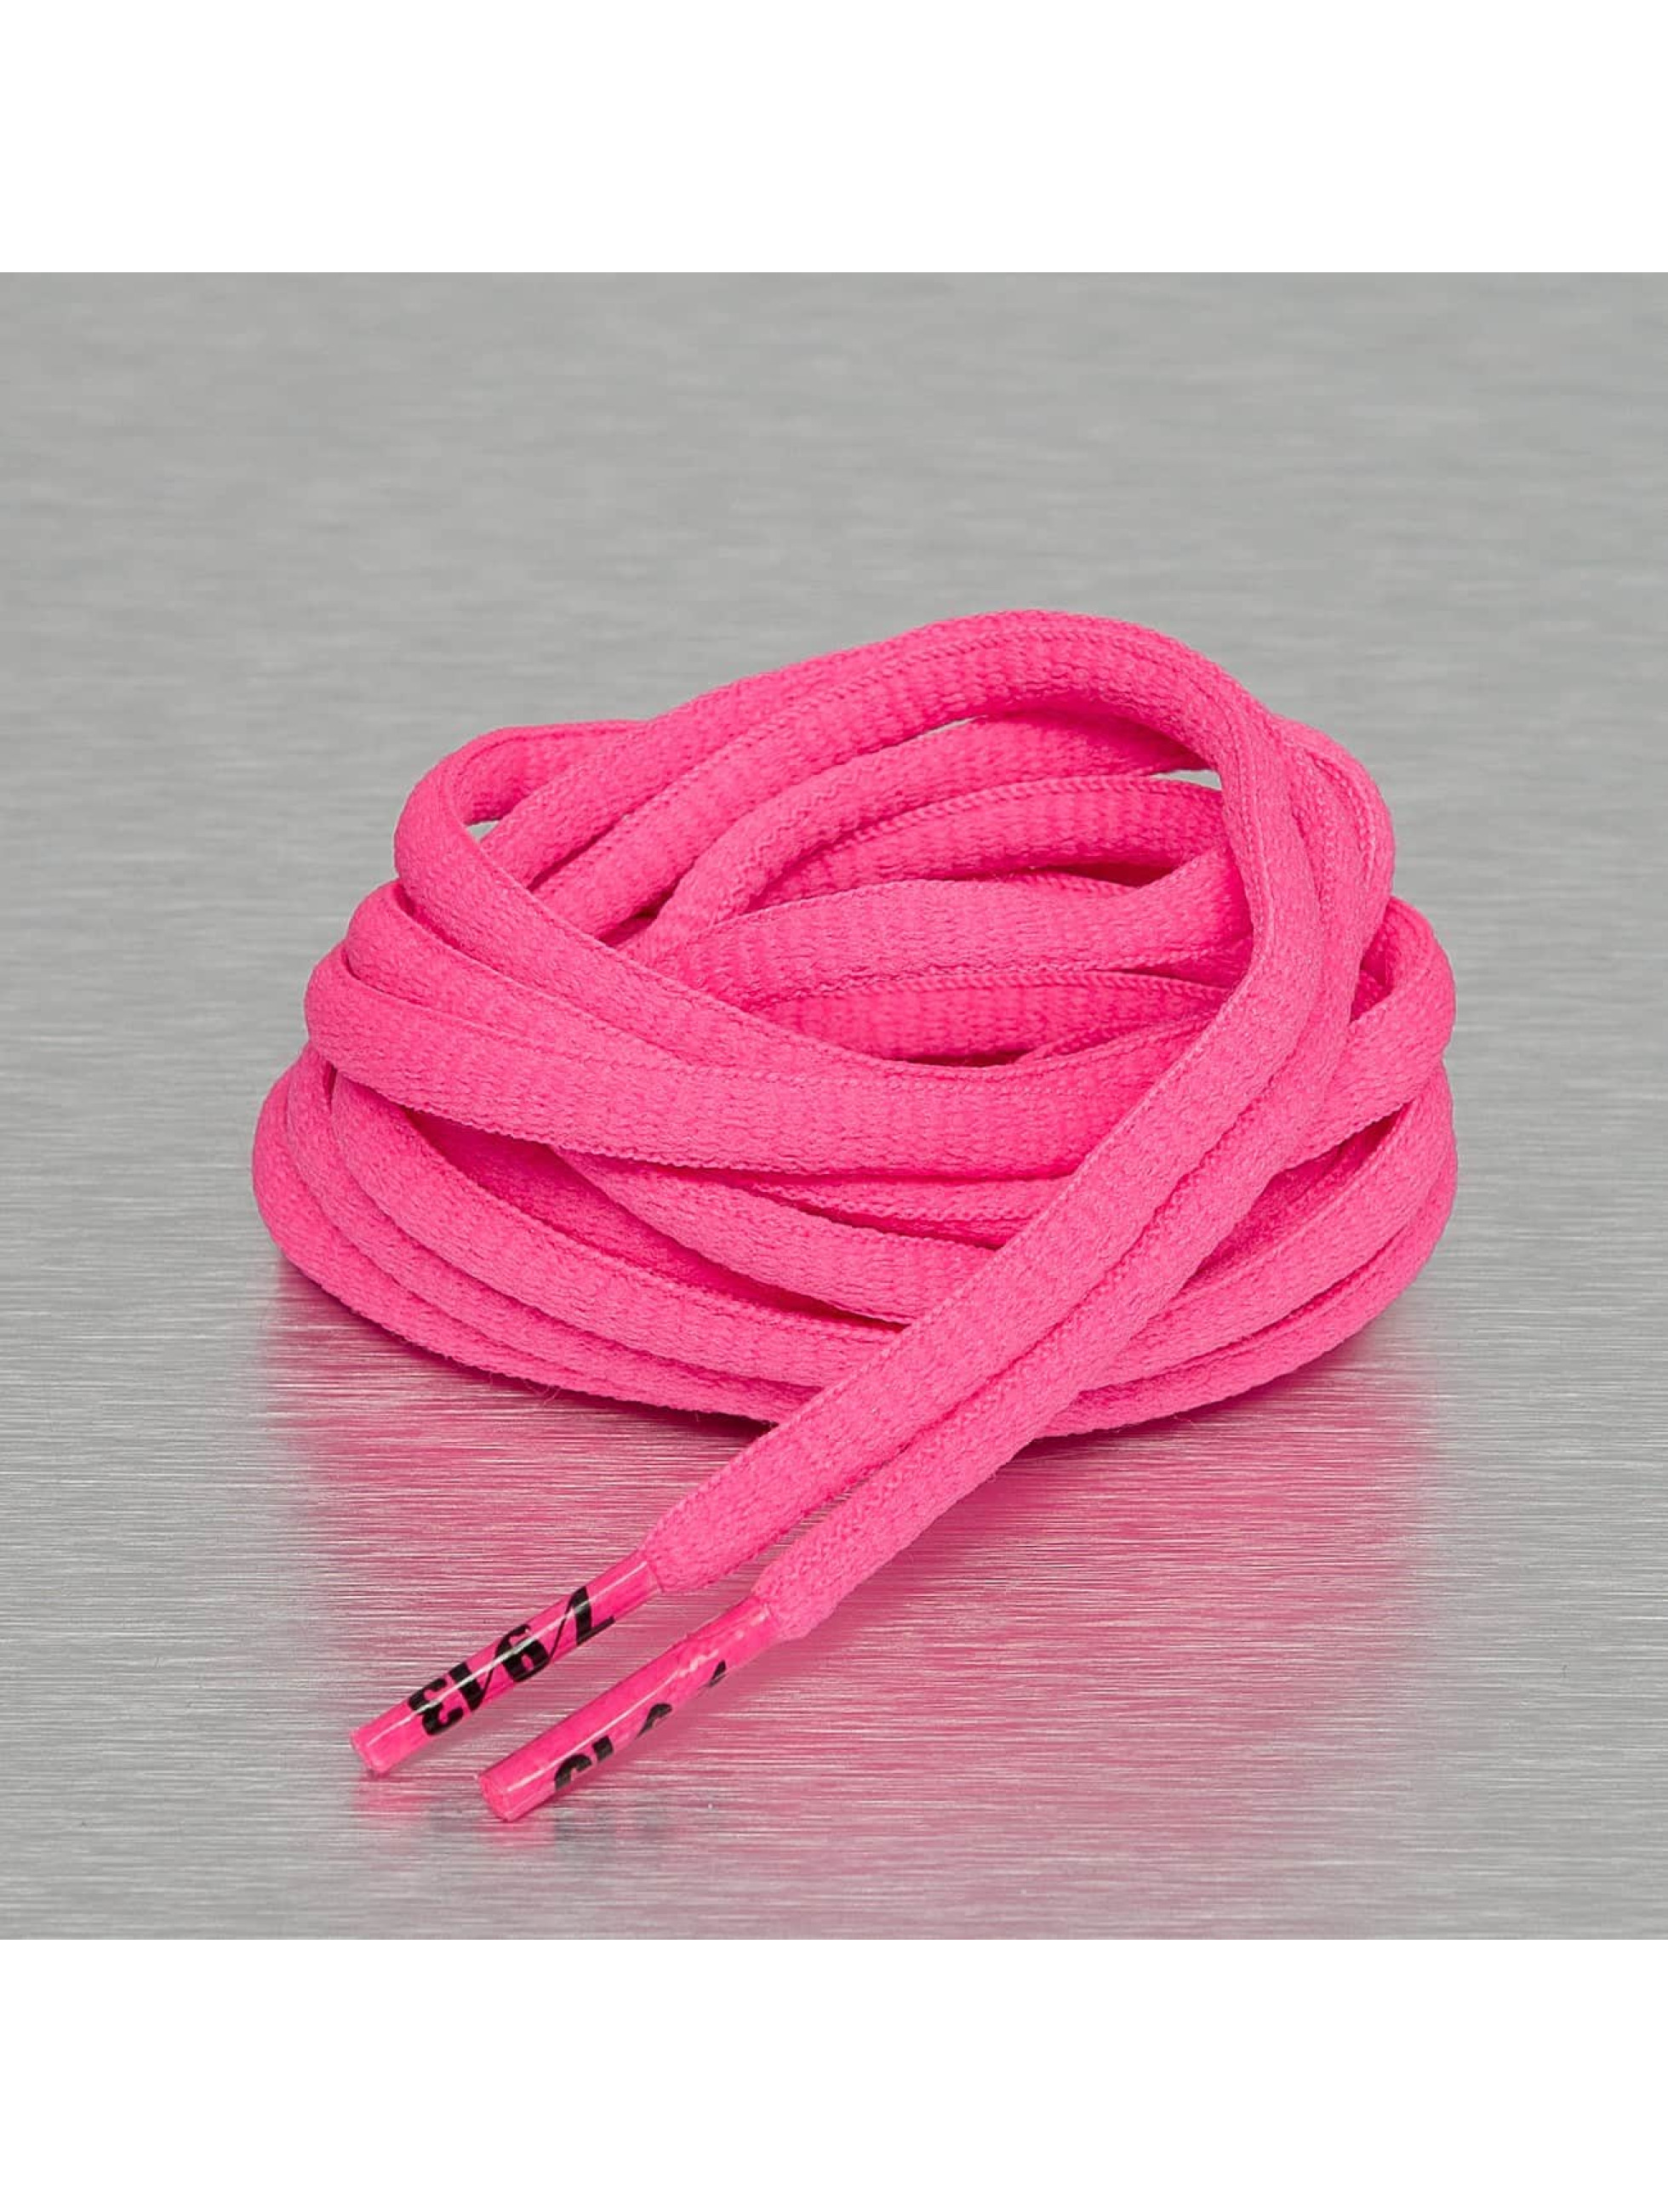 Seven Nine 13 Shoelace Hard Candy Round pink